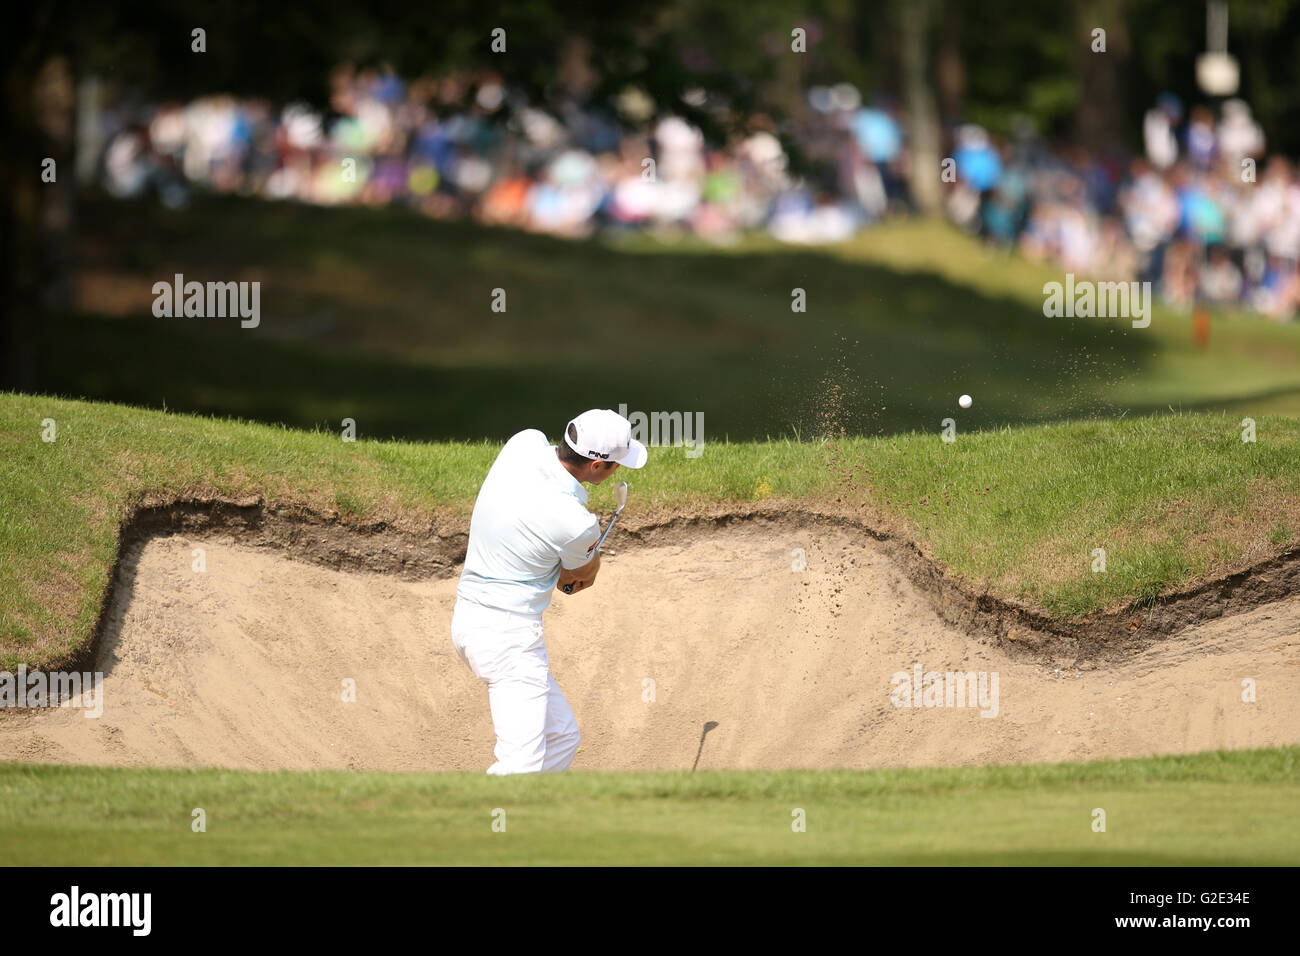 France's Julien Quesne plays a bunker shot on the 13th hole during day four of the BMW PGA Championship at Wentworth - Stock Image